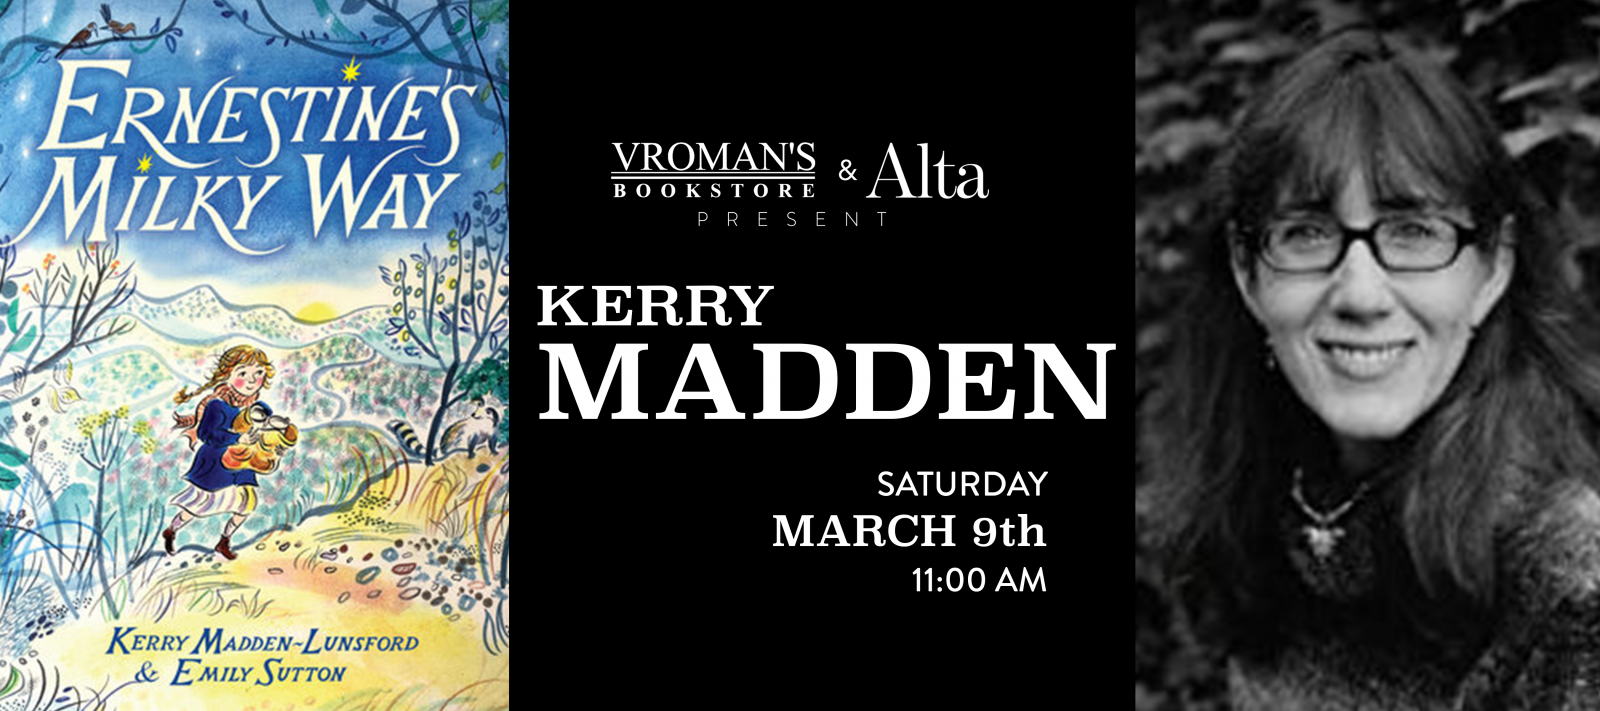 Kerry Madden Book Signing Saturday March 9th at 11am